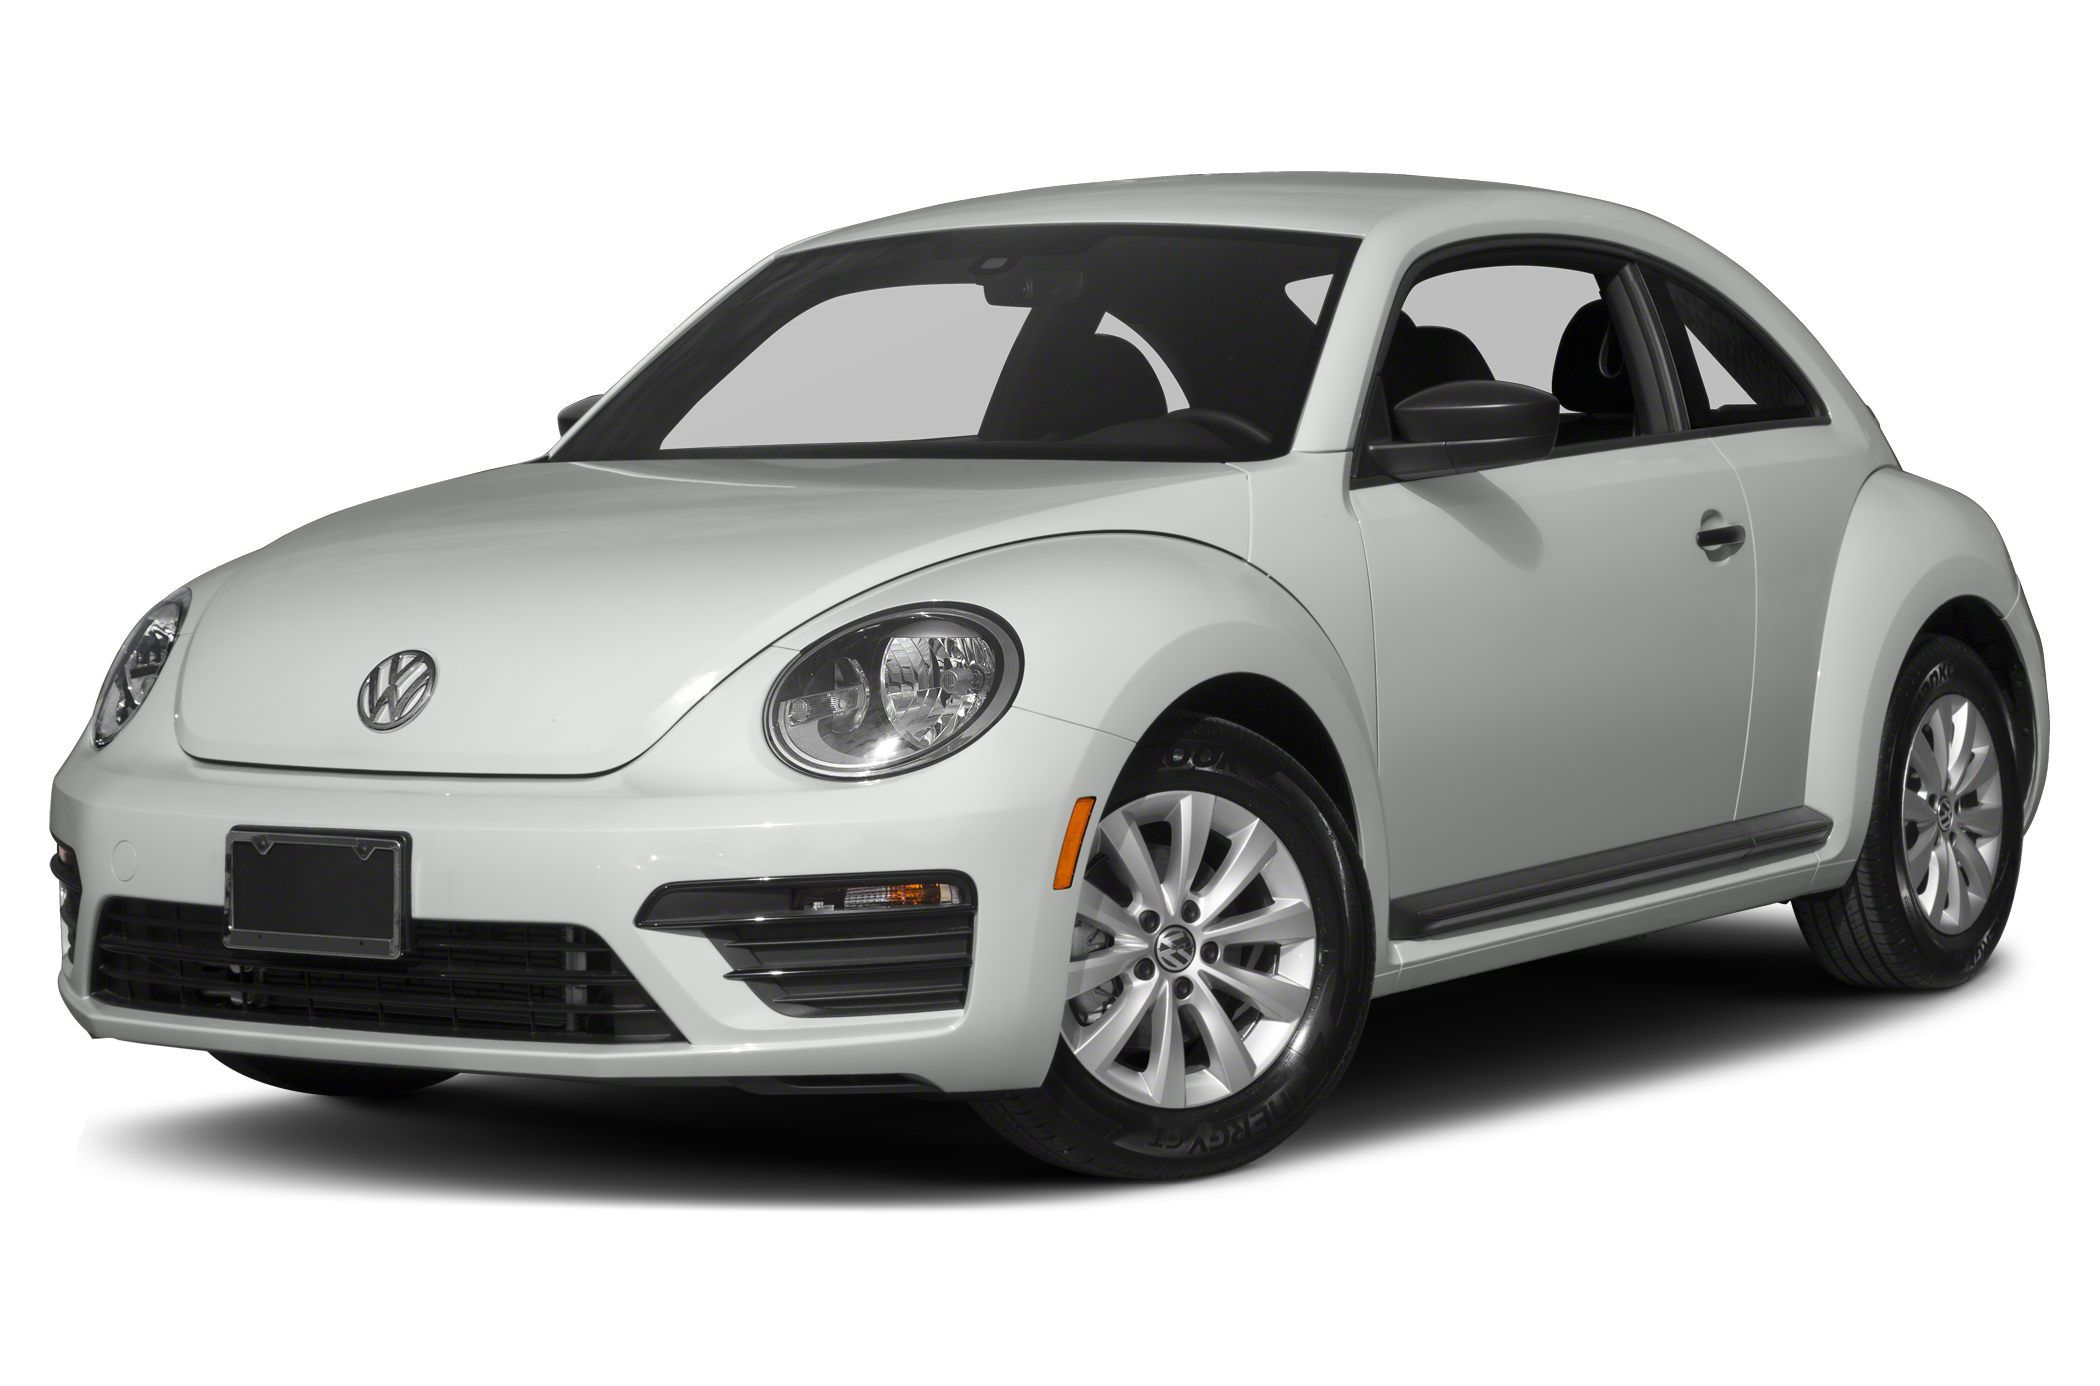 New Volkswagen Beetle Specification & parison pare from 4